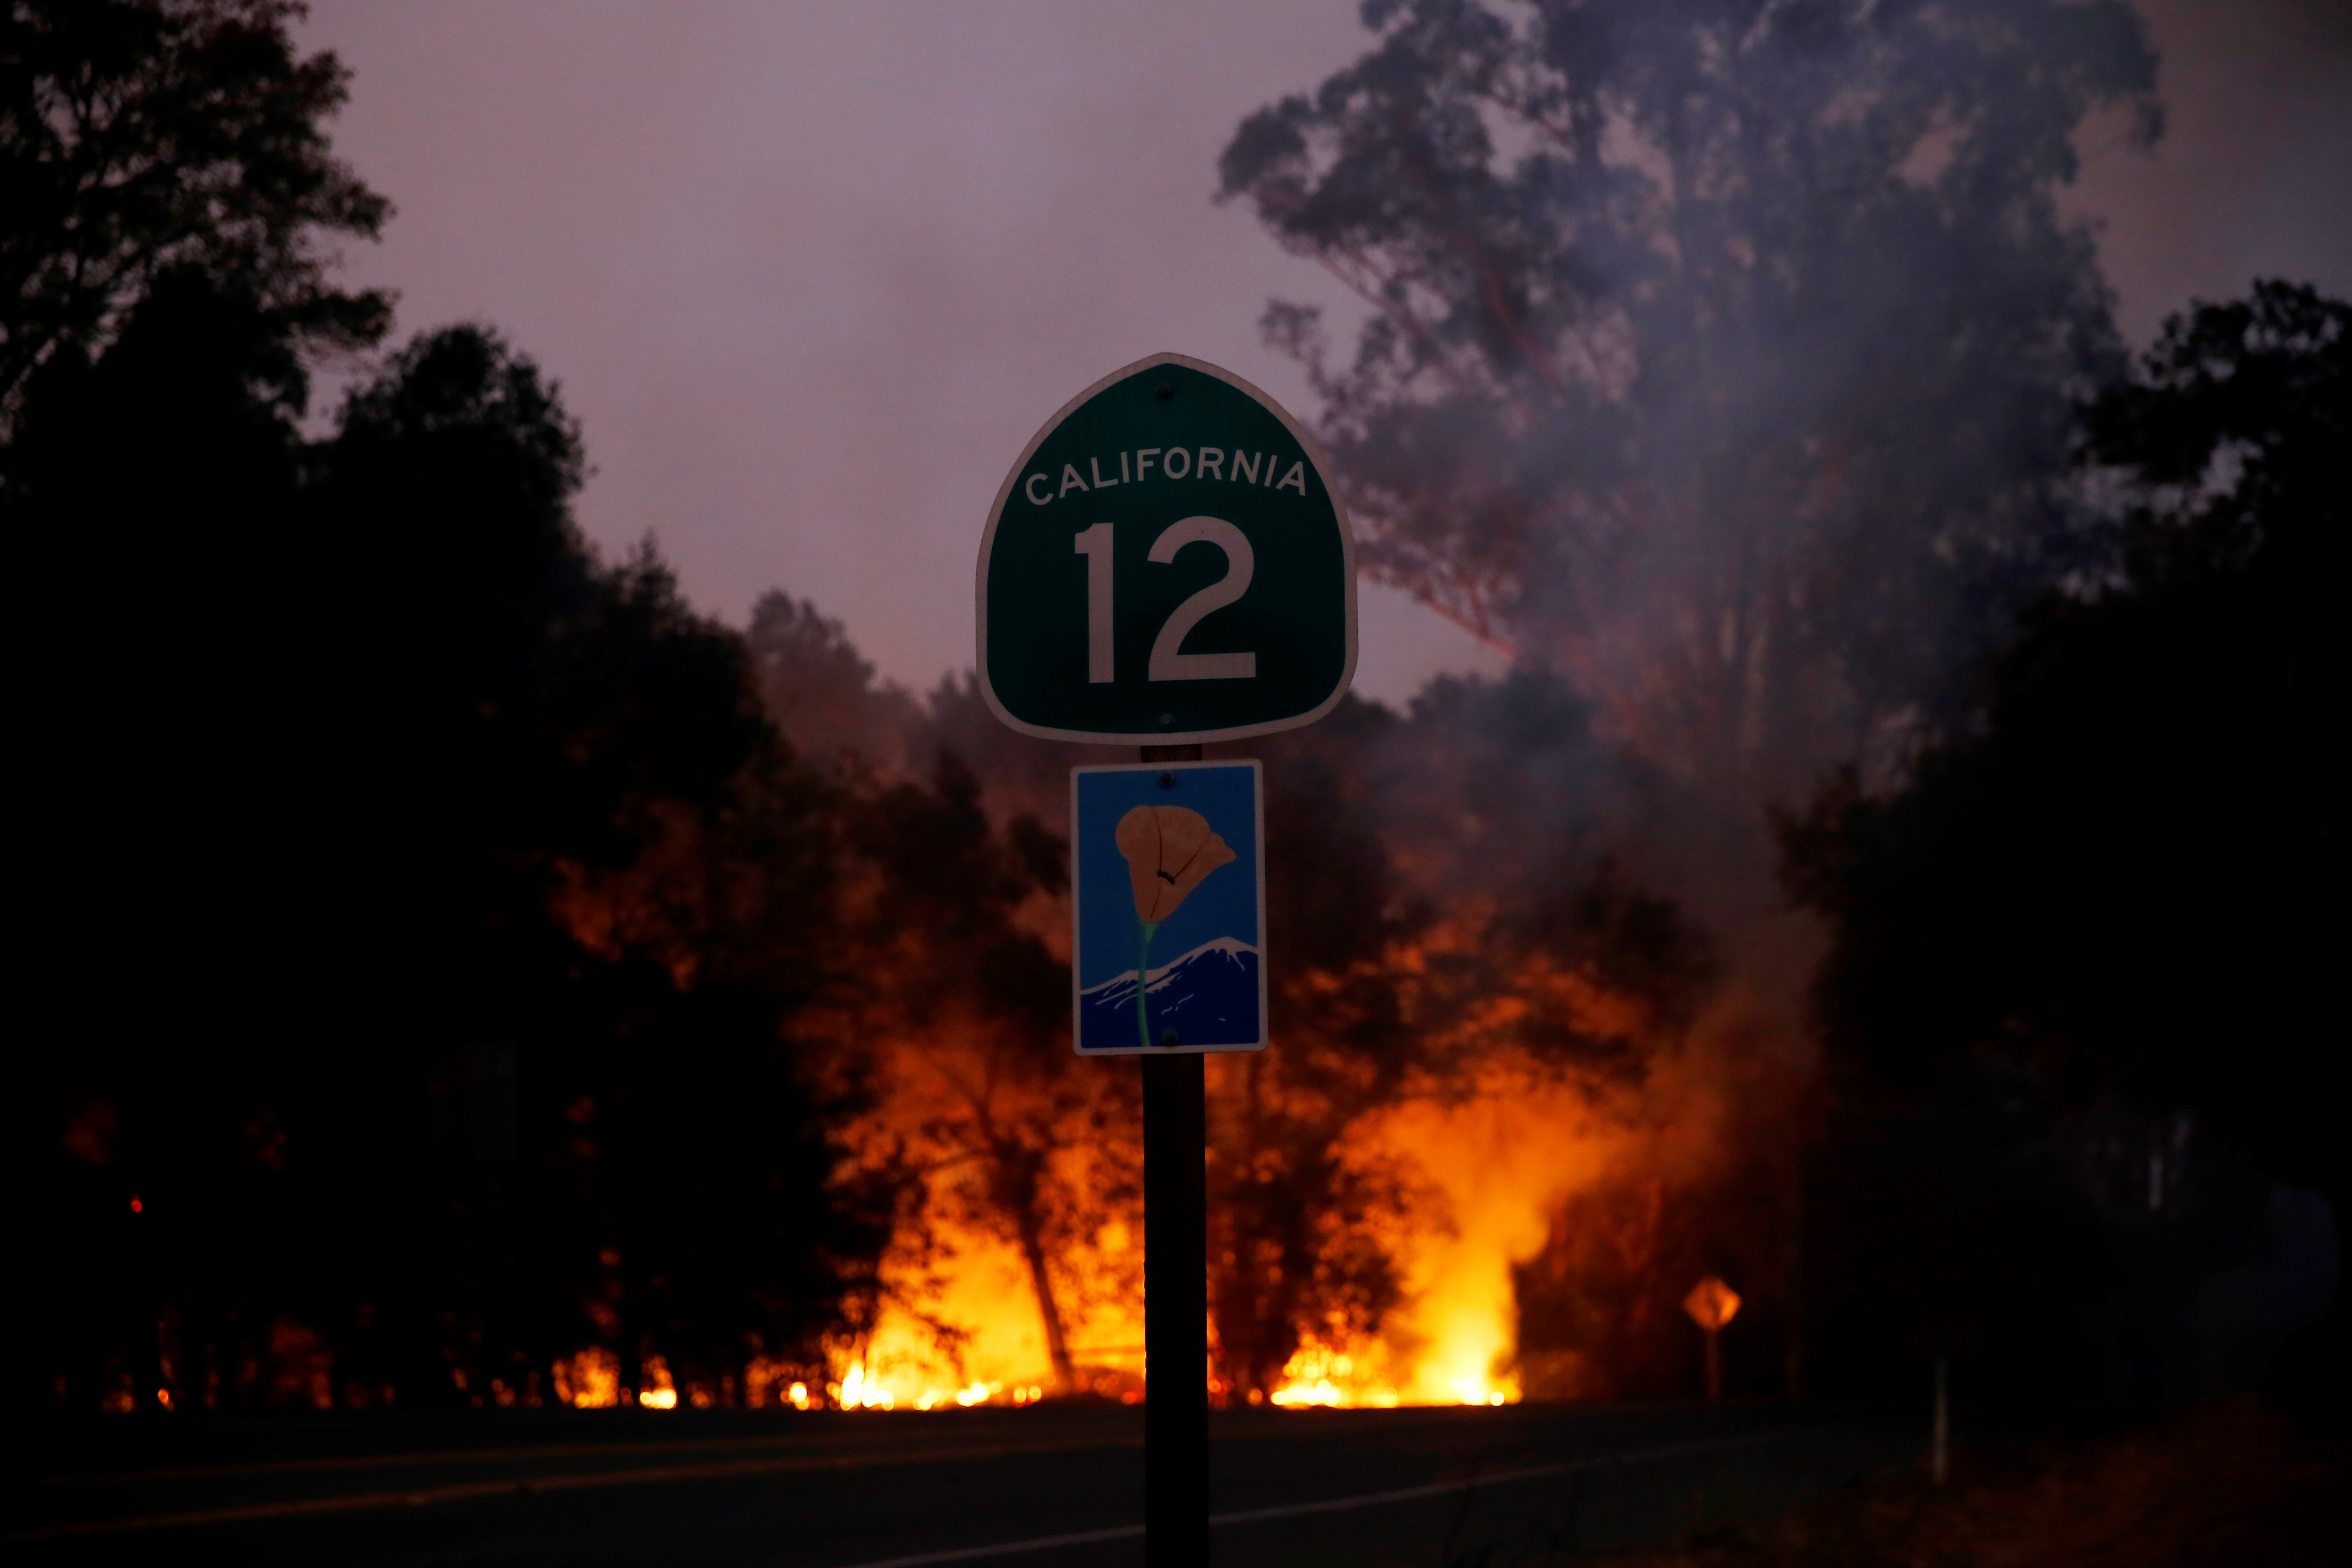 Smoke and flames rise as a wildfire from the Santa Rosa and Napa Valley moves through the area in California, United States on October 10, 2017.